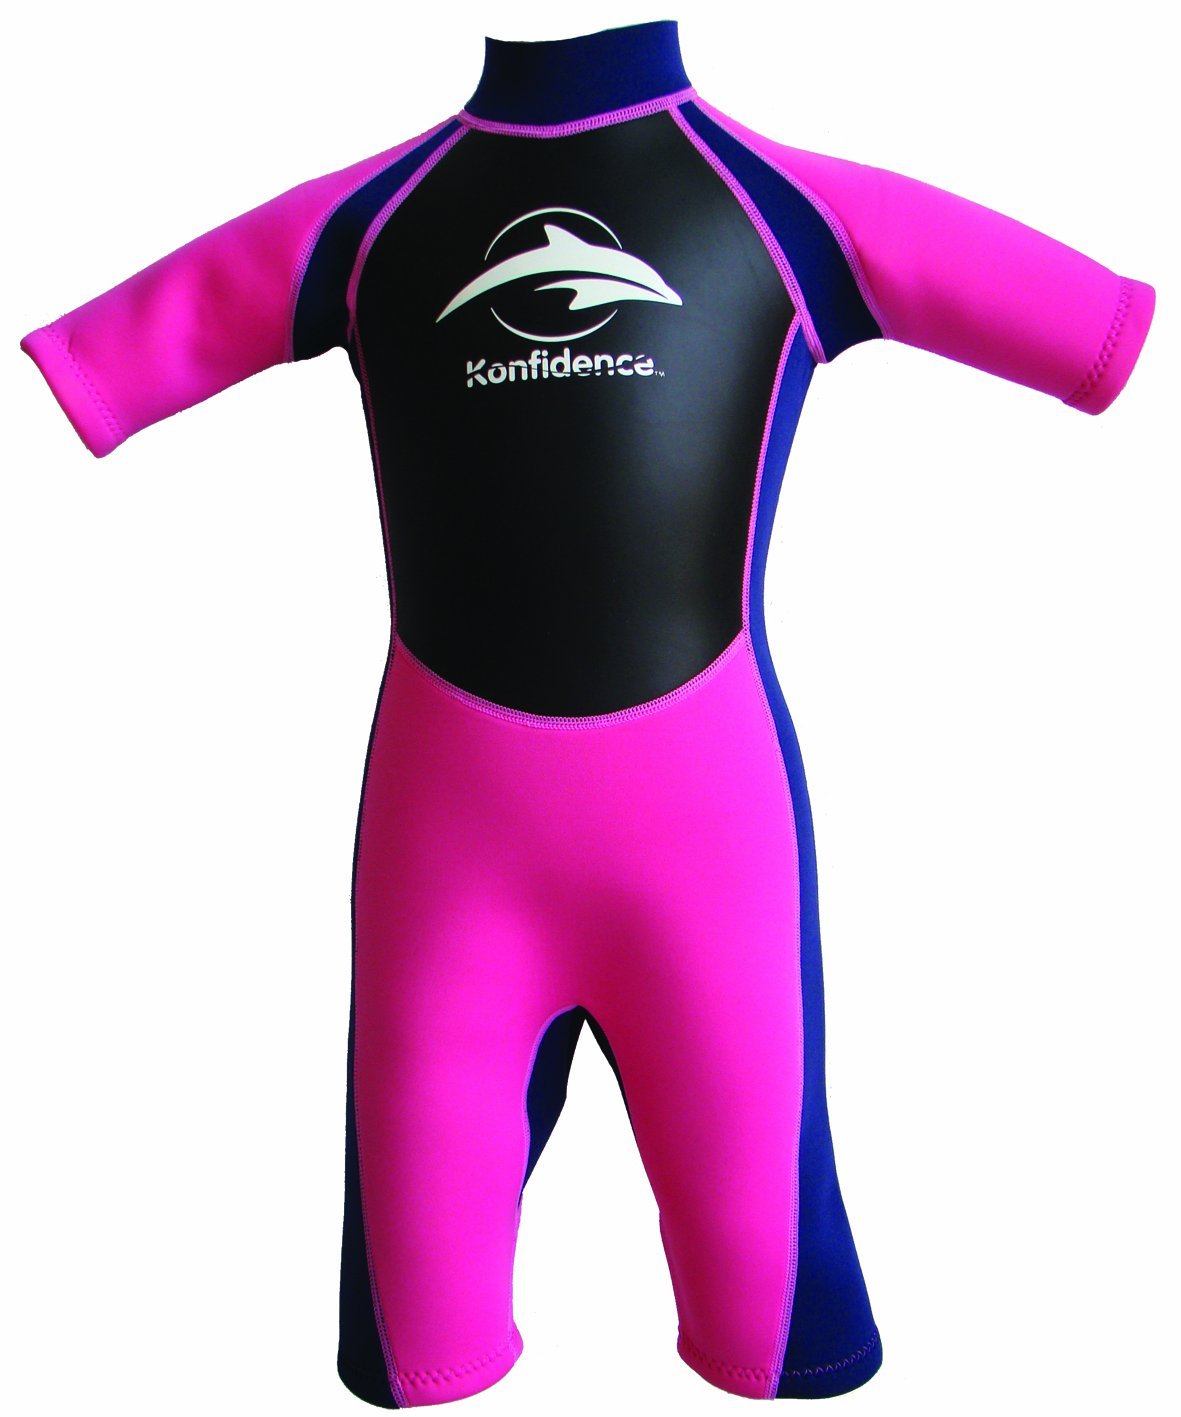 Konfidence Shorty Children's Wetsuit - Pink (3-4 Years) by Konfidence